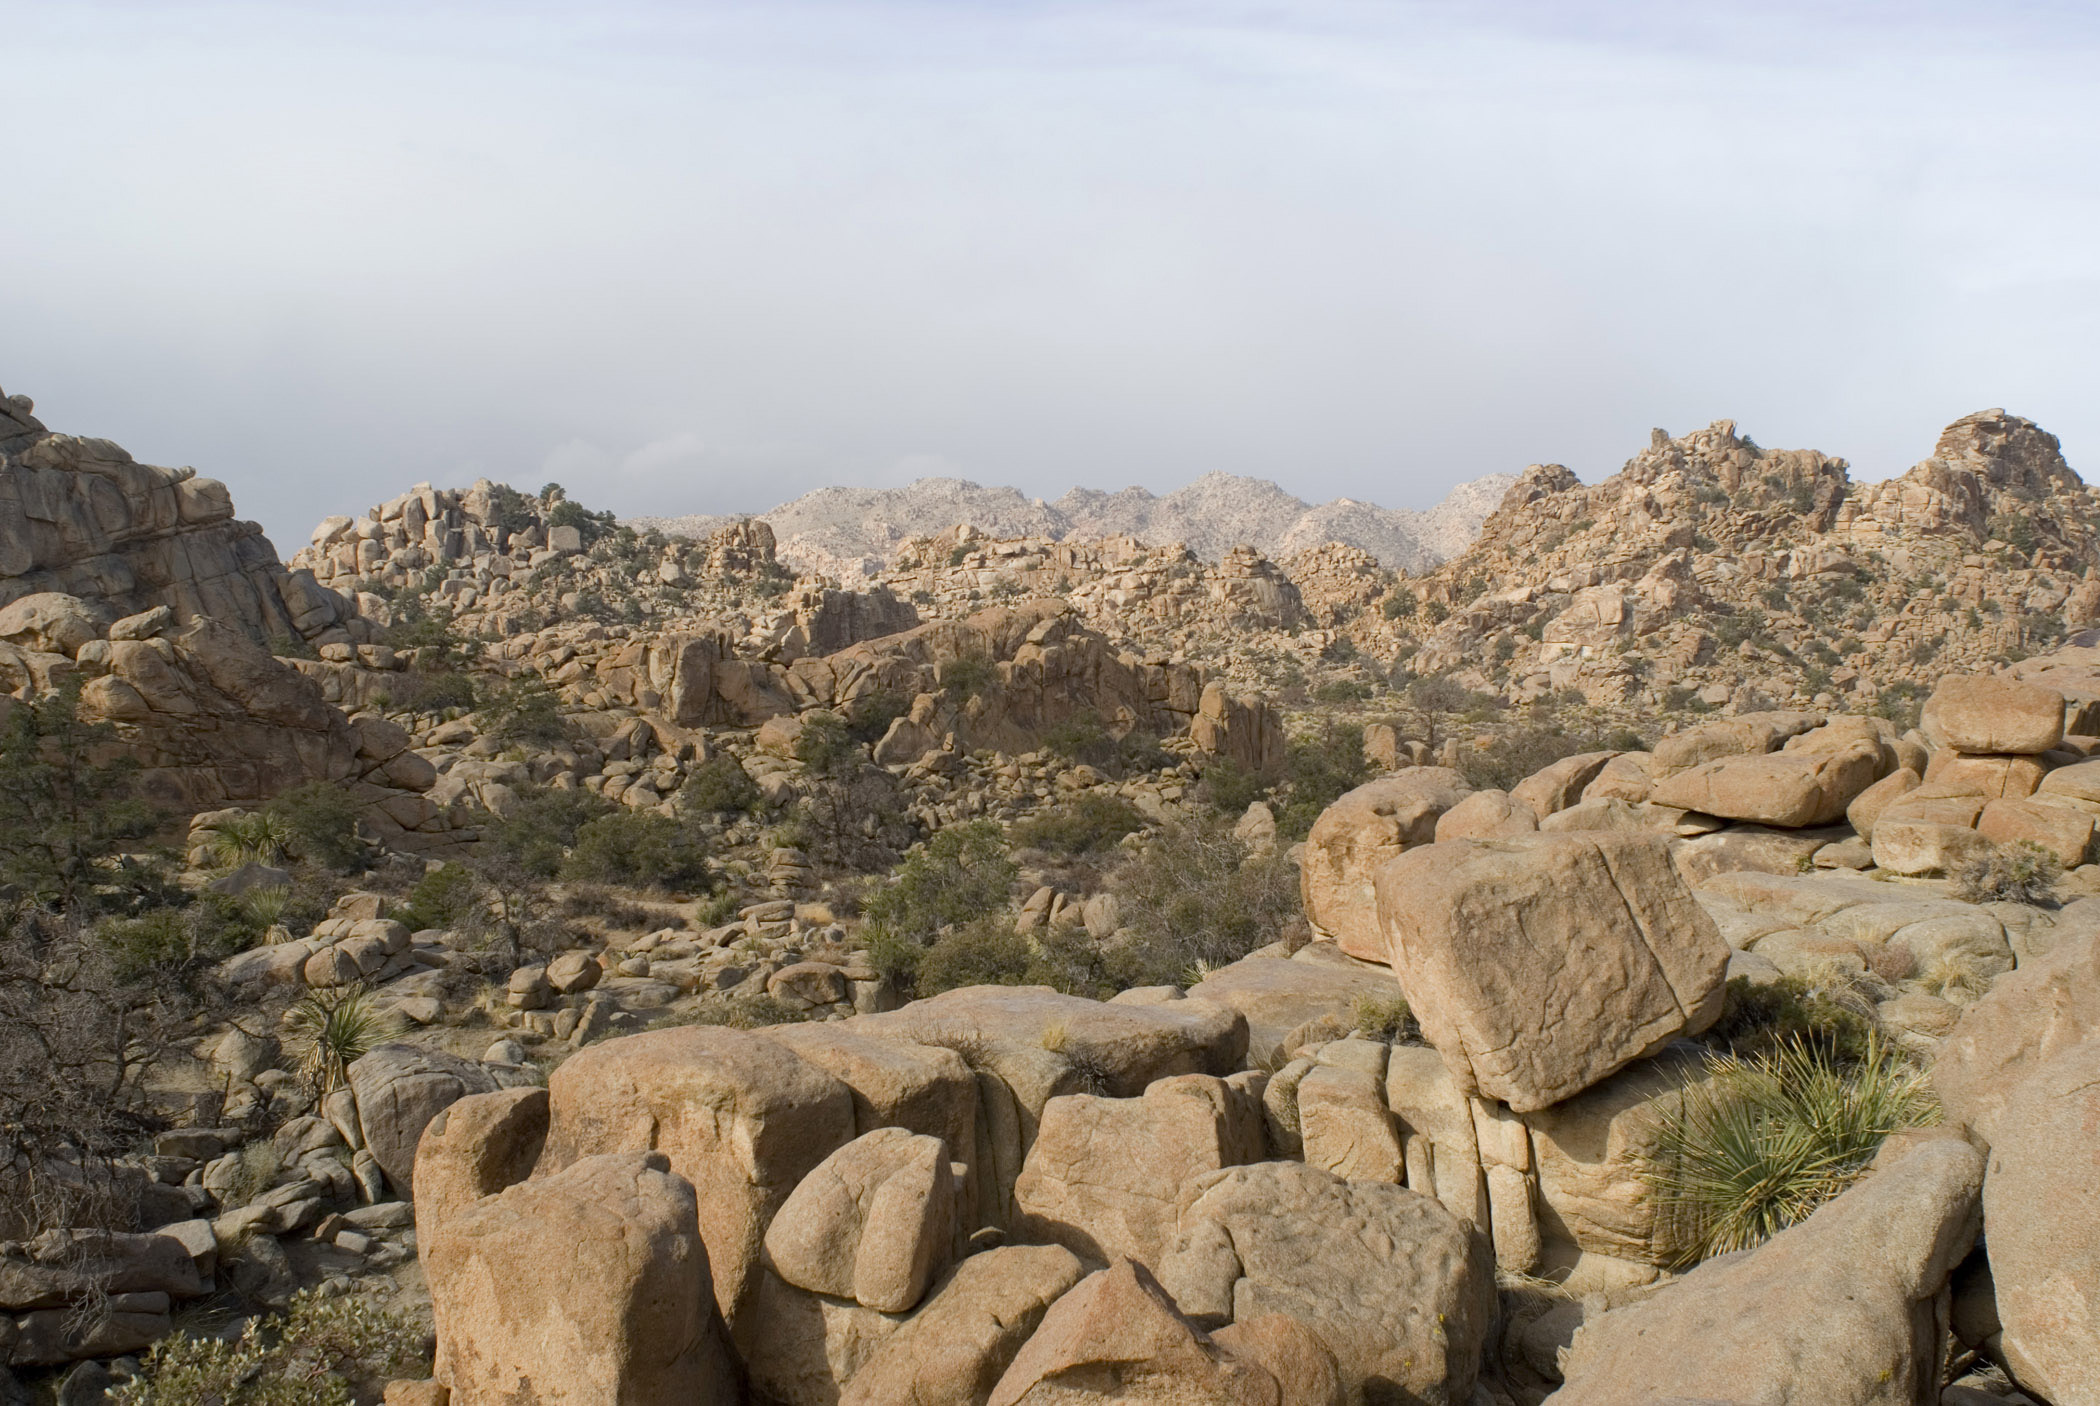 Big Rocks with Small Green Grasses on Ground at Joshua Tree National Park. Isolated on Lighter Blue Gray Sky Background.